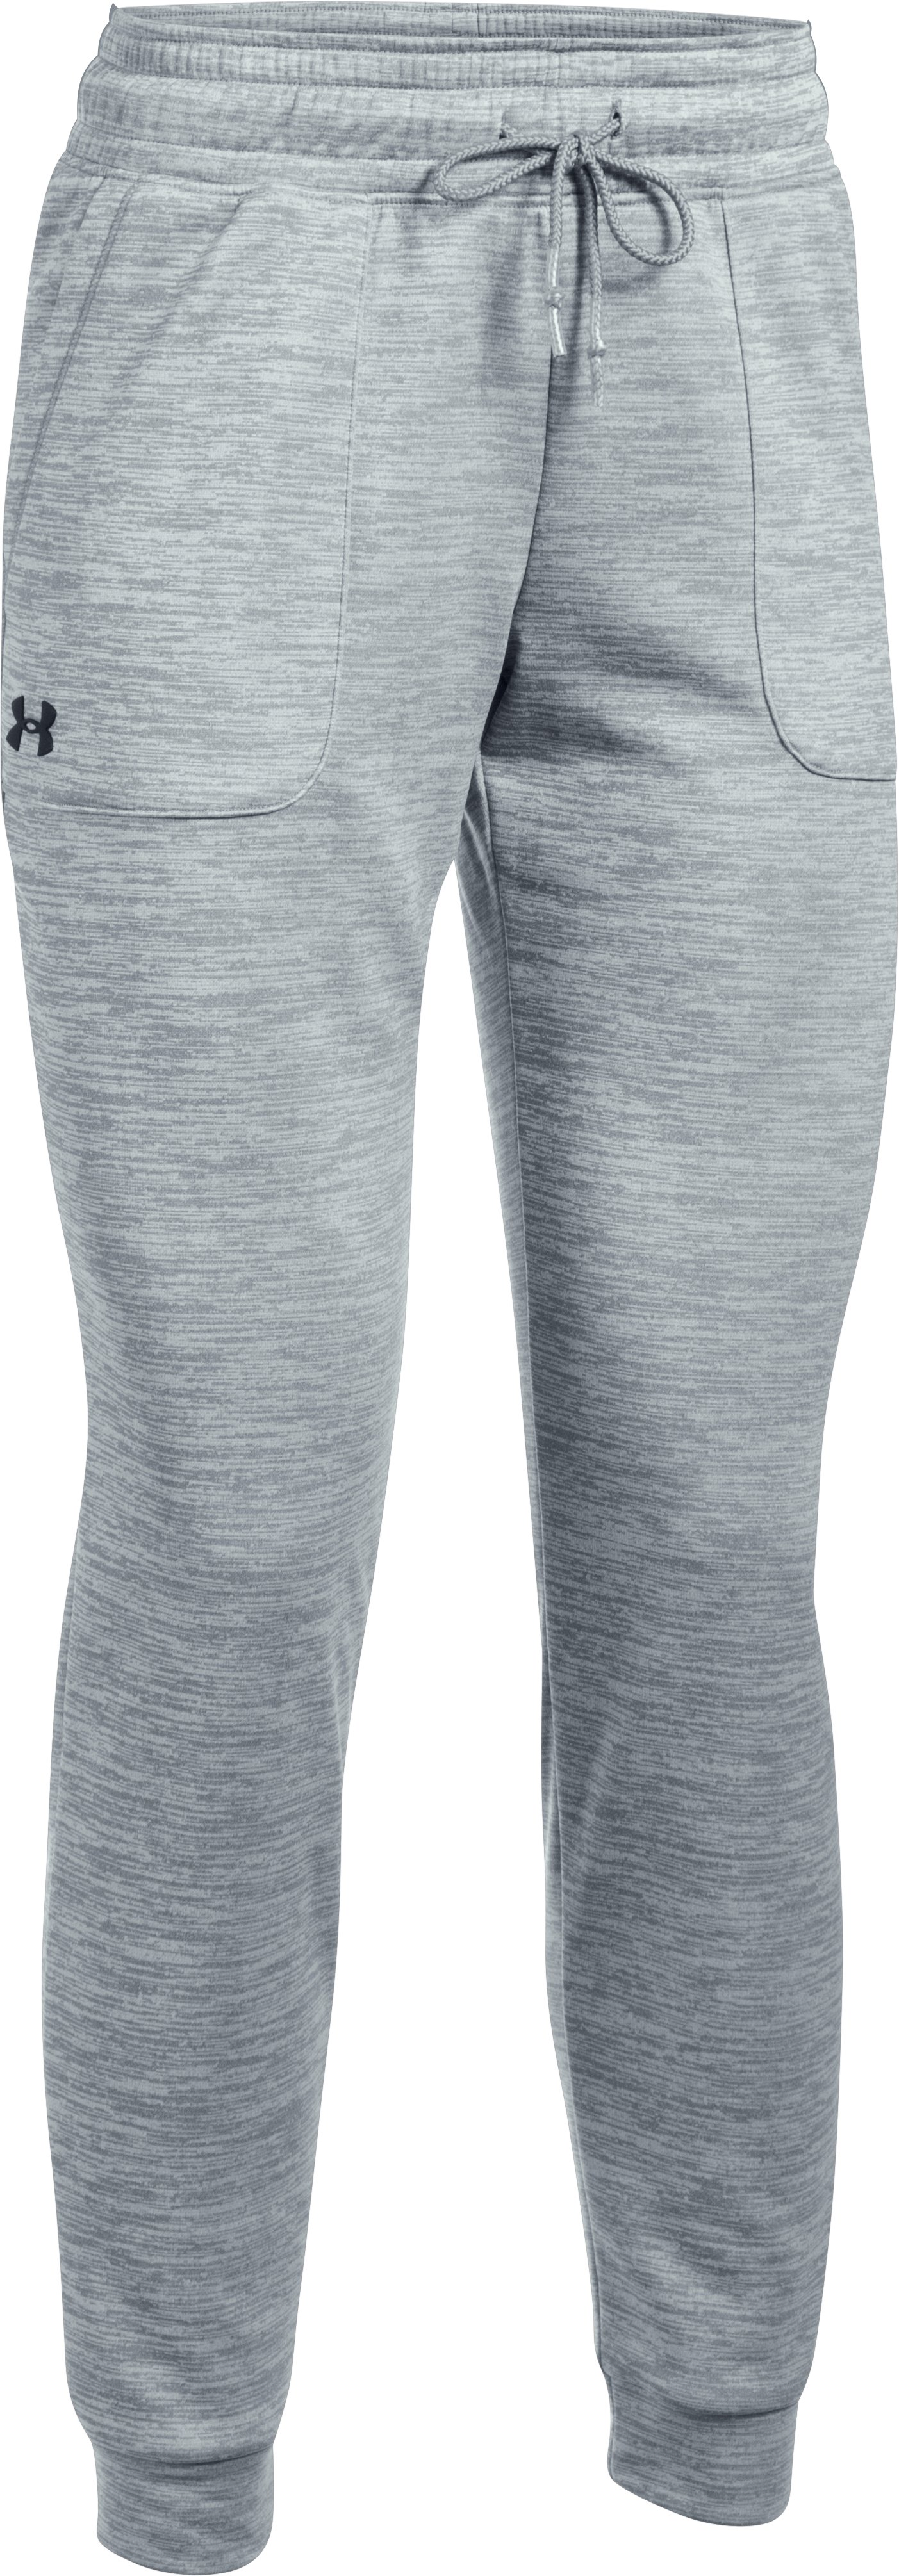 Women's UA Storm Armour® Fleece Lightweight Jogger - Twist, Steel, zoomed image